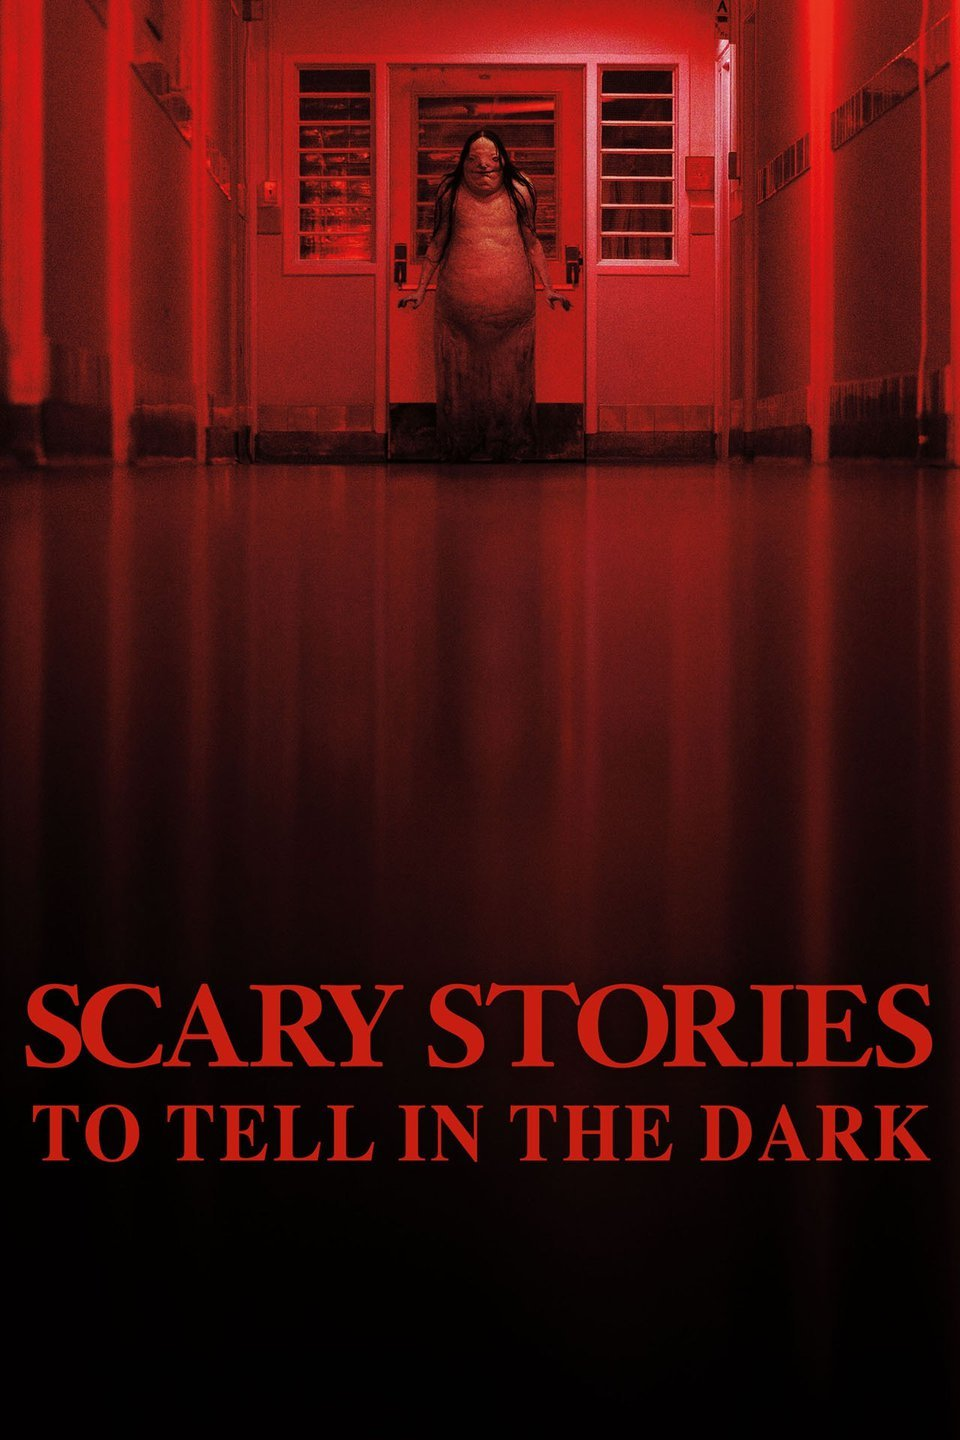 Image result for scary stories to tell in the dark movie